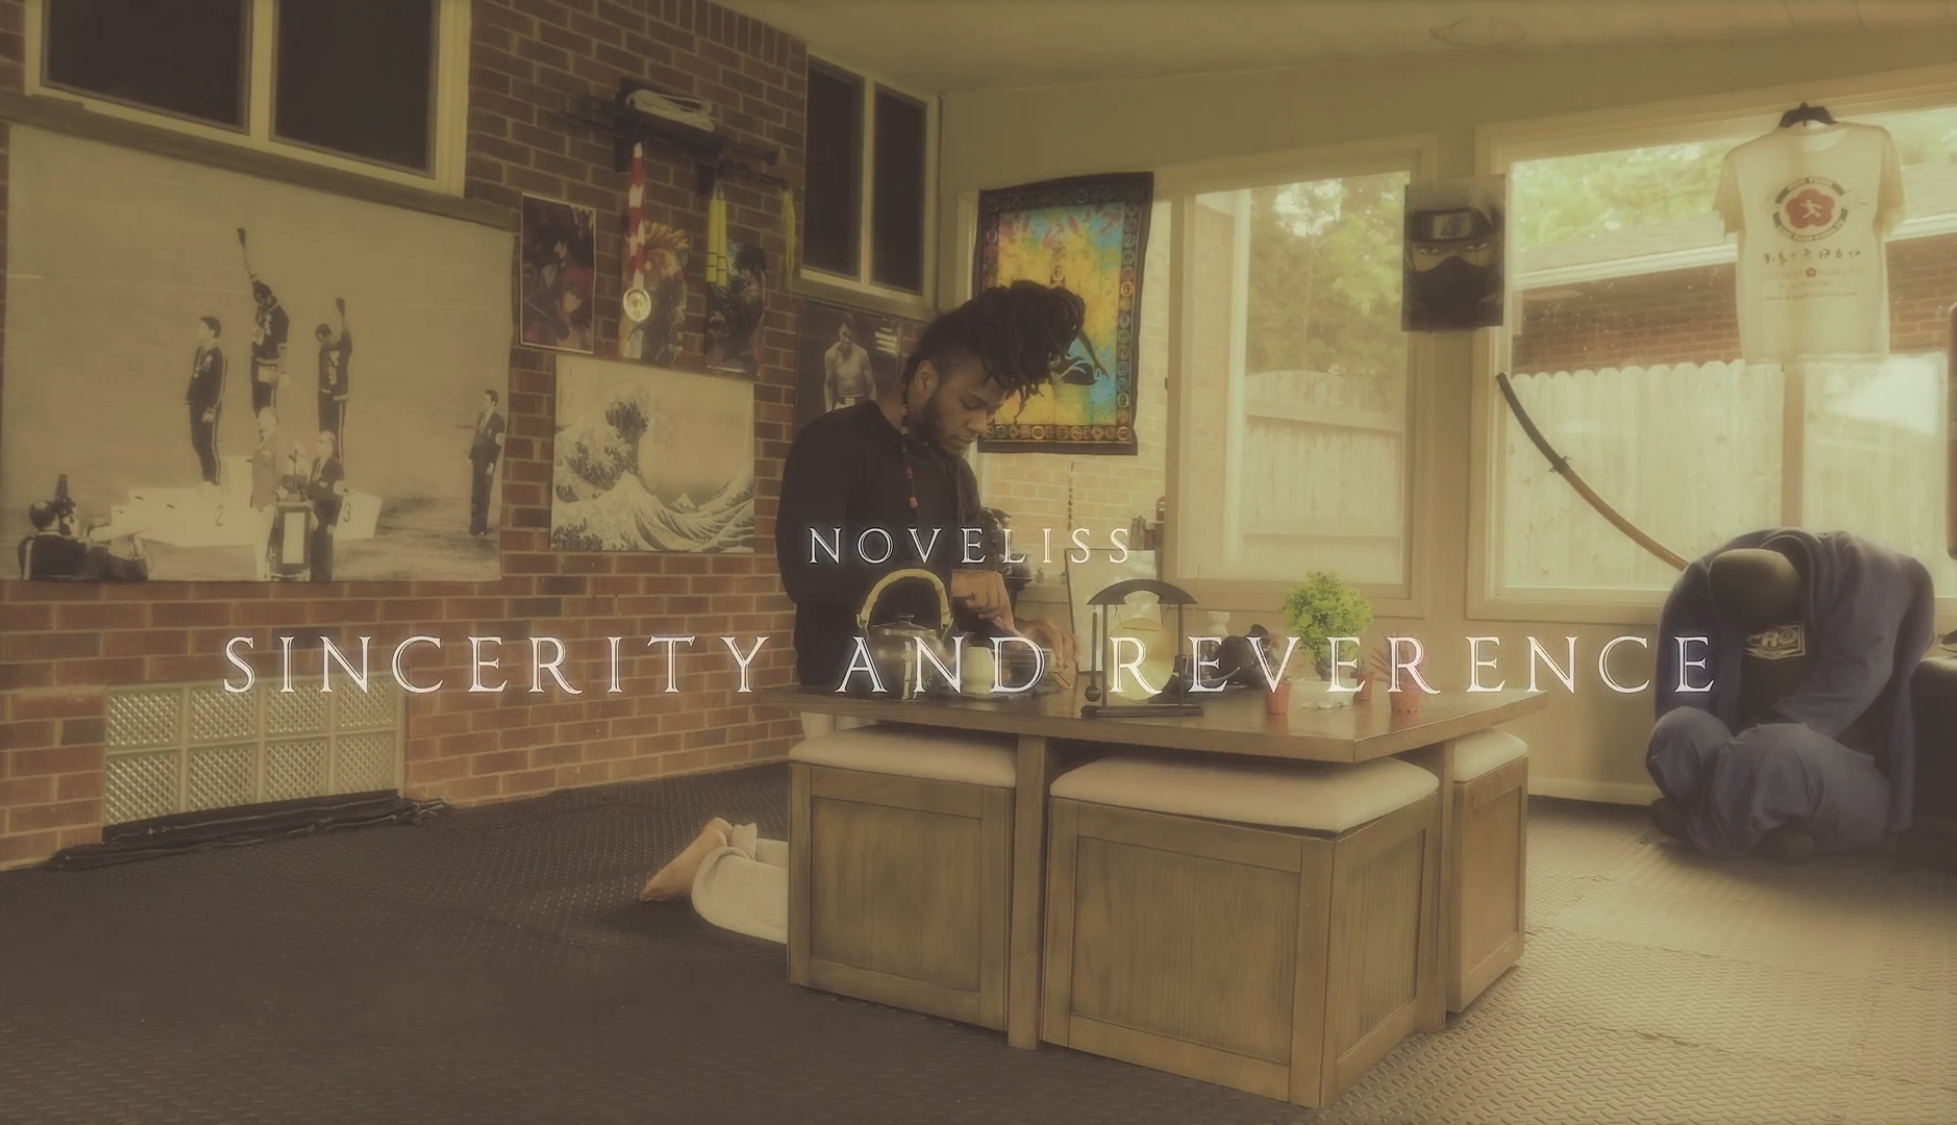 Noveliss & Dixon Hill - Sincerity and Reverence [video]